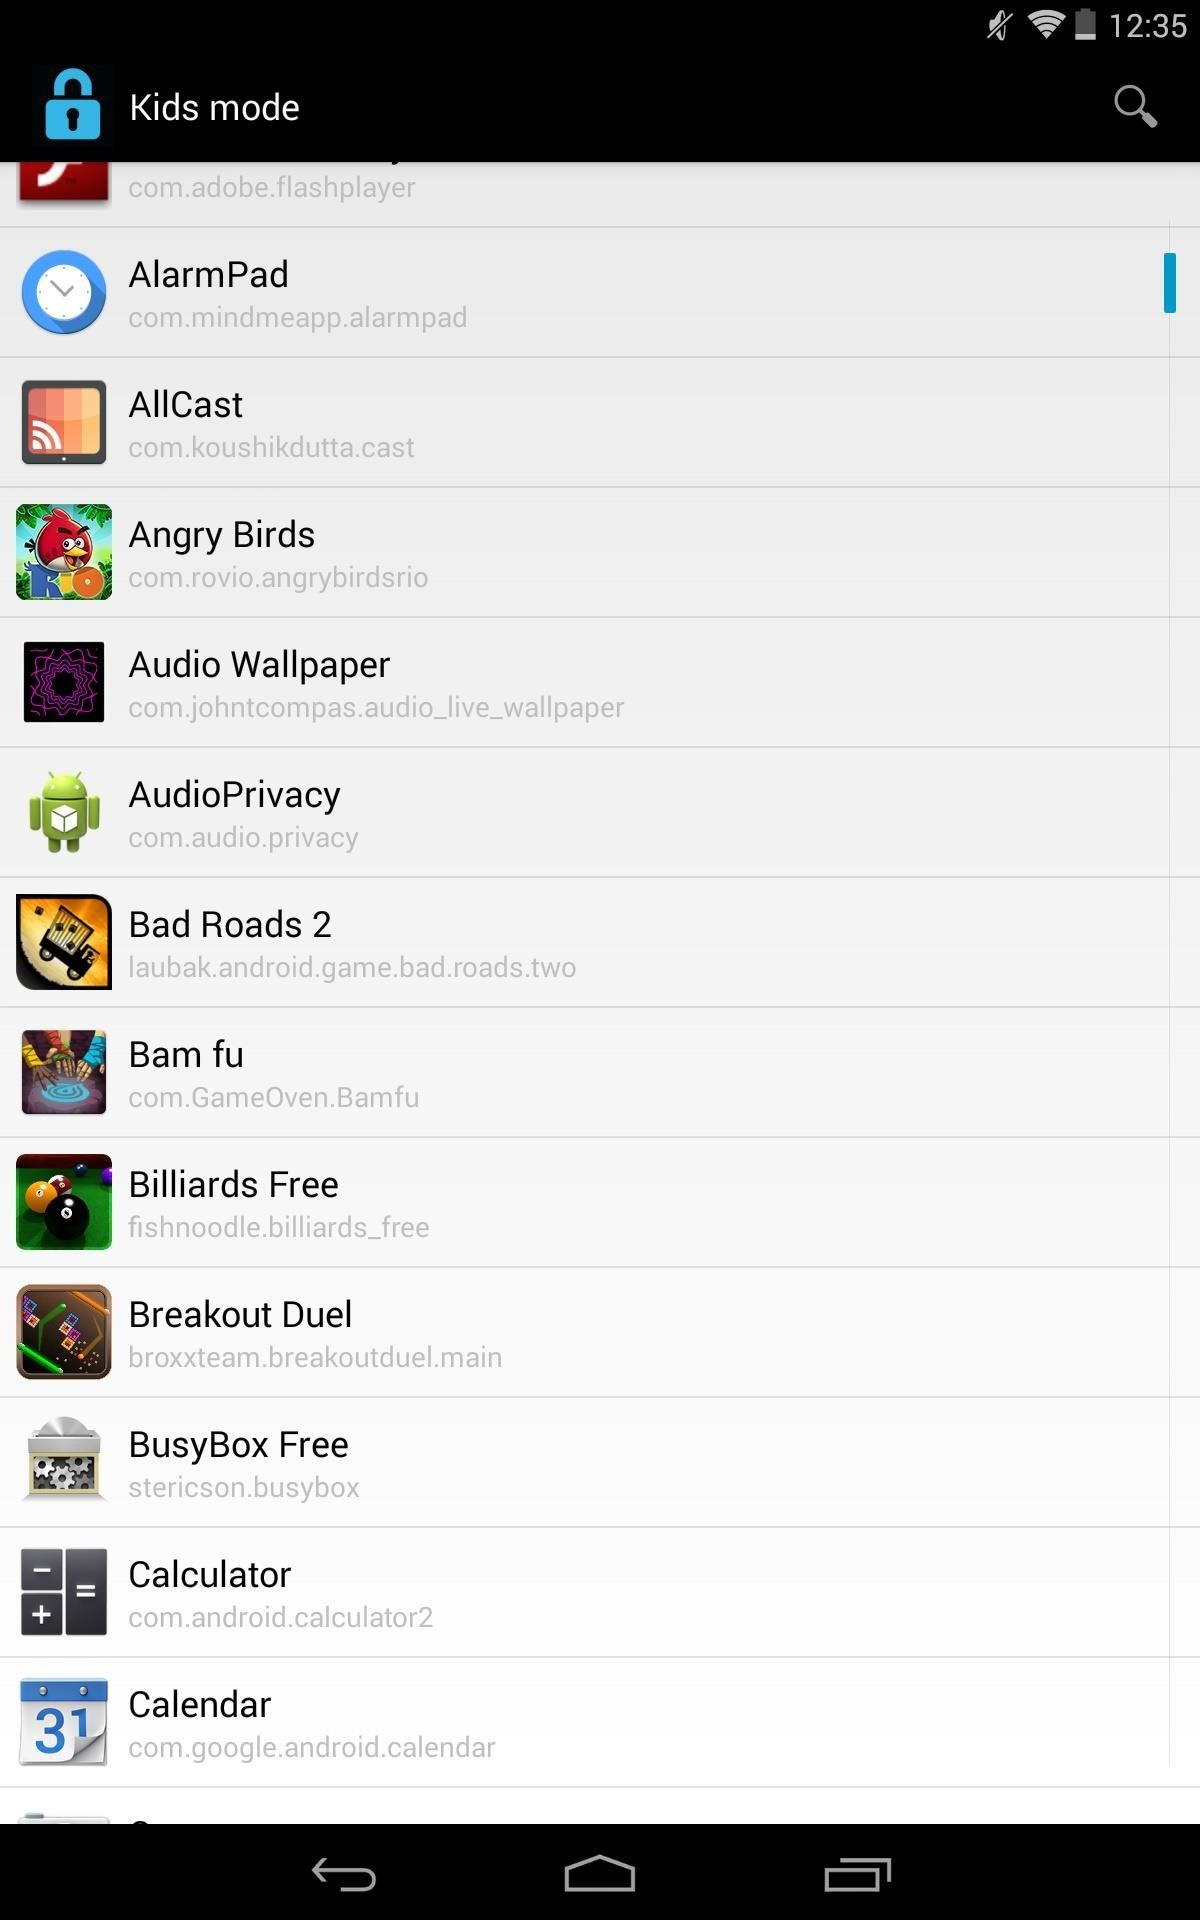 How to Enable Kids Mode on Any Android